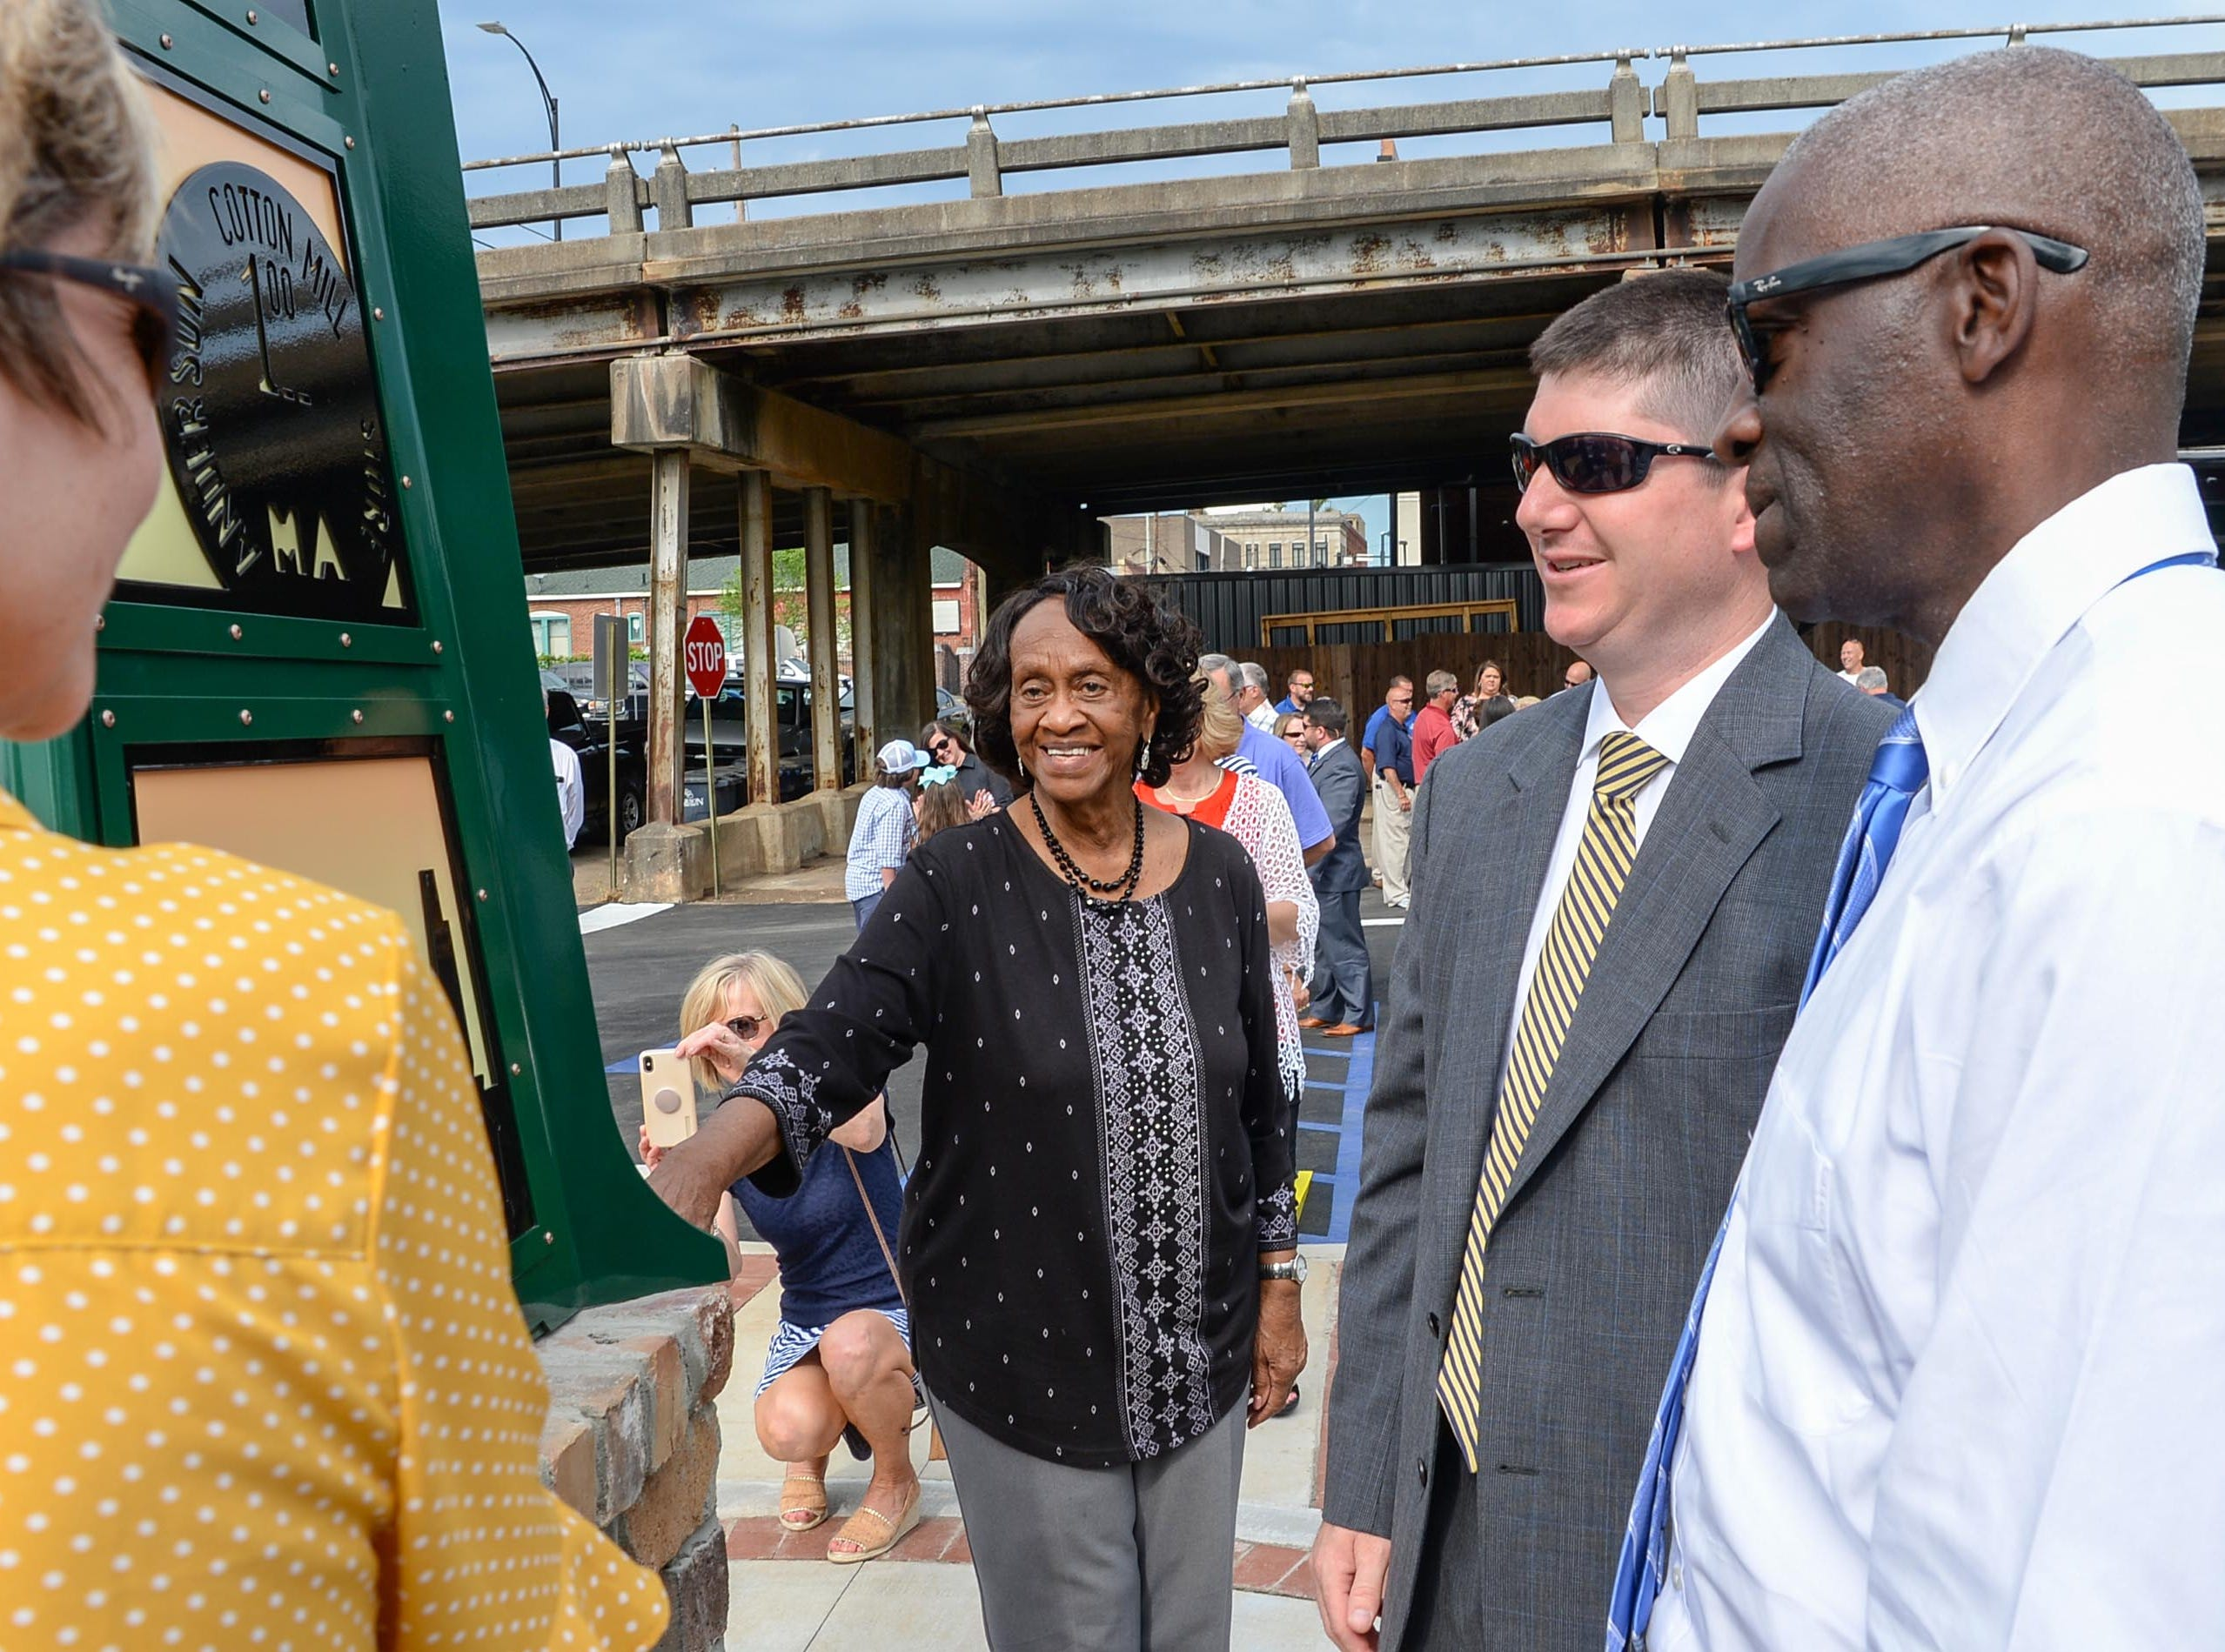 Beth Batson, left, Bea Thompson, David McCuen, and Mayor Terence Roberts, right, look closely at the Textile Point monument after unveiling it in downtown Anderson Thursday, May 9, 2019. Scott Foster of Anderson designed the monument honoring years of textile mills in Anderson, with support partners from To Benefit Anderson, South Carolina Heritage Corridor, the Rotary Club of Anderson, and the City of Anderson.